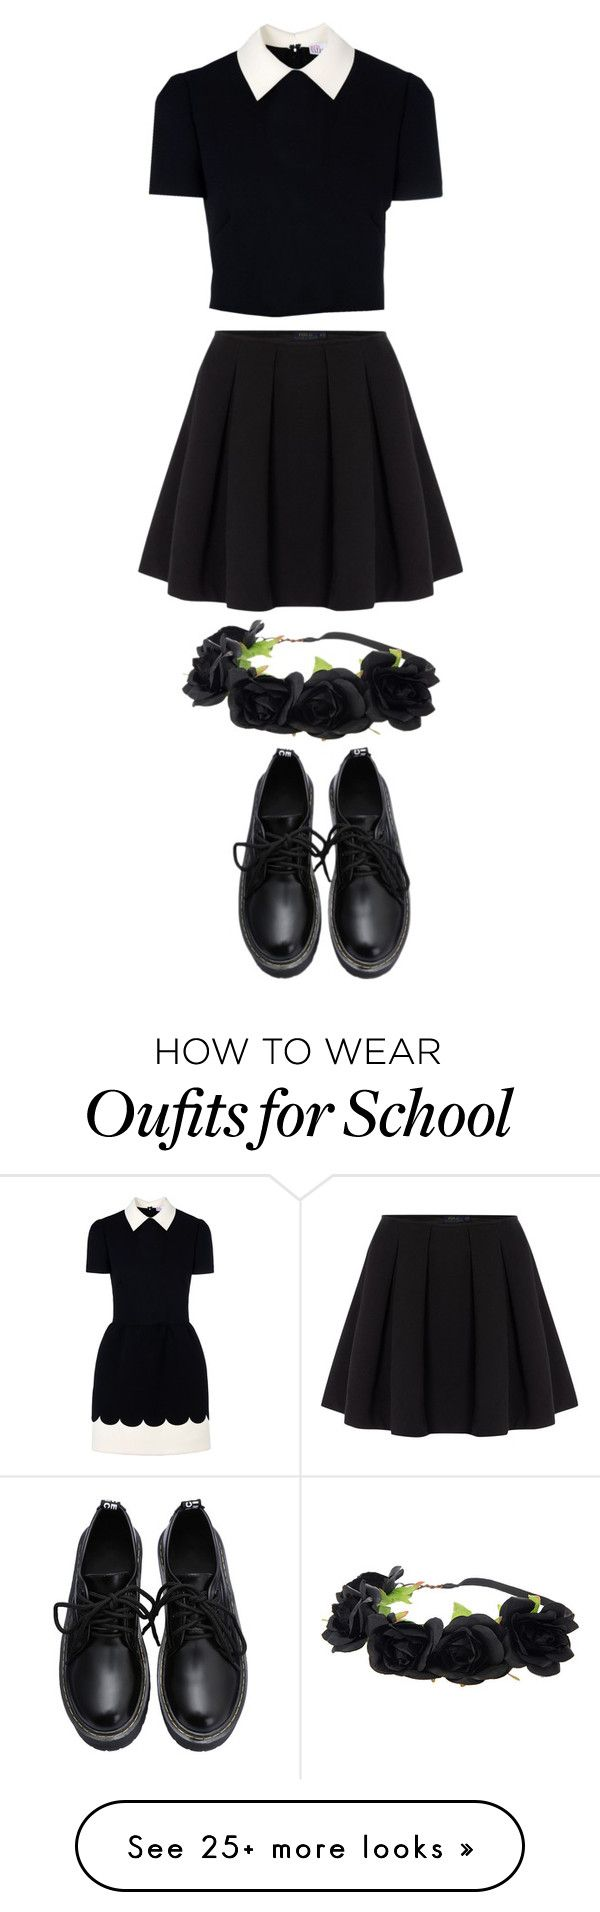 """All School"" by gracerose03 on Polyvore featuring RED Valentino, Polo Ralph Lauren, women's clothing, women, female, woman, misses and juniors"